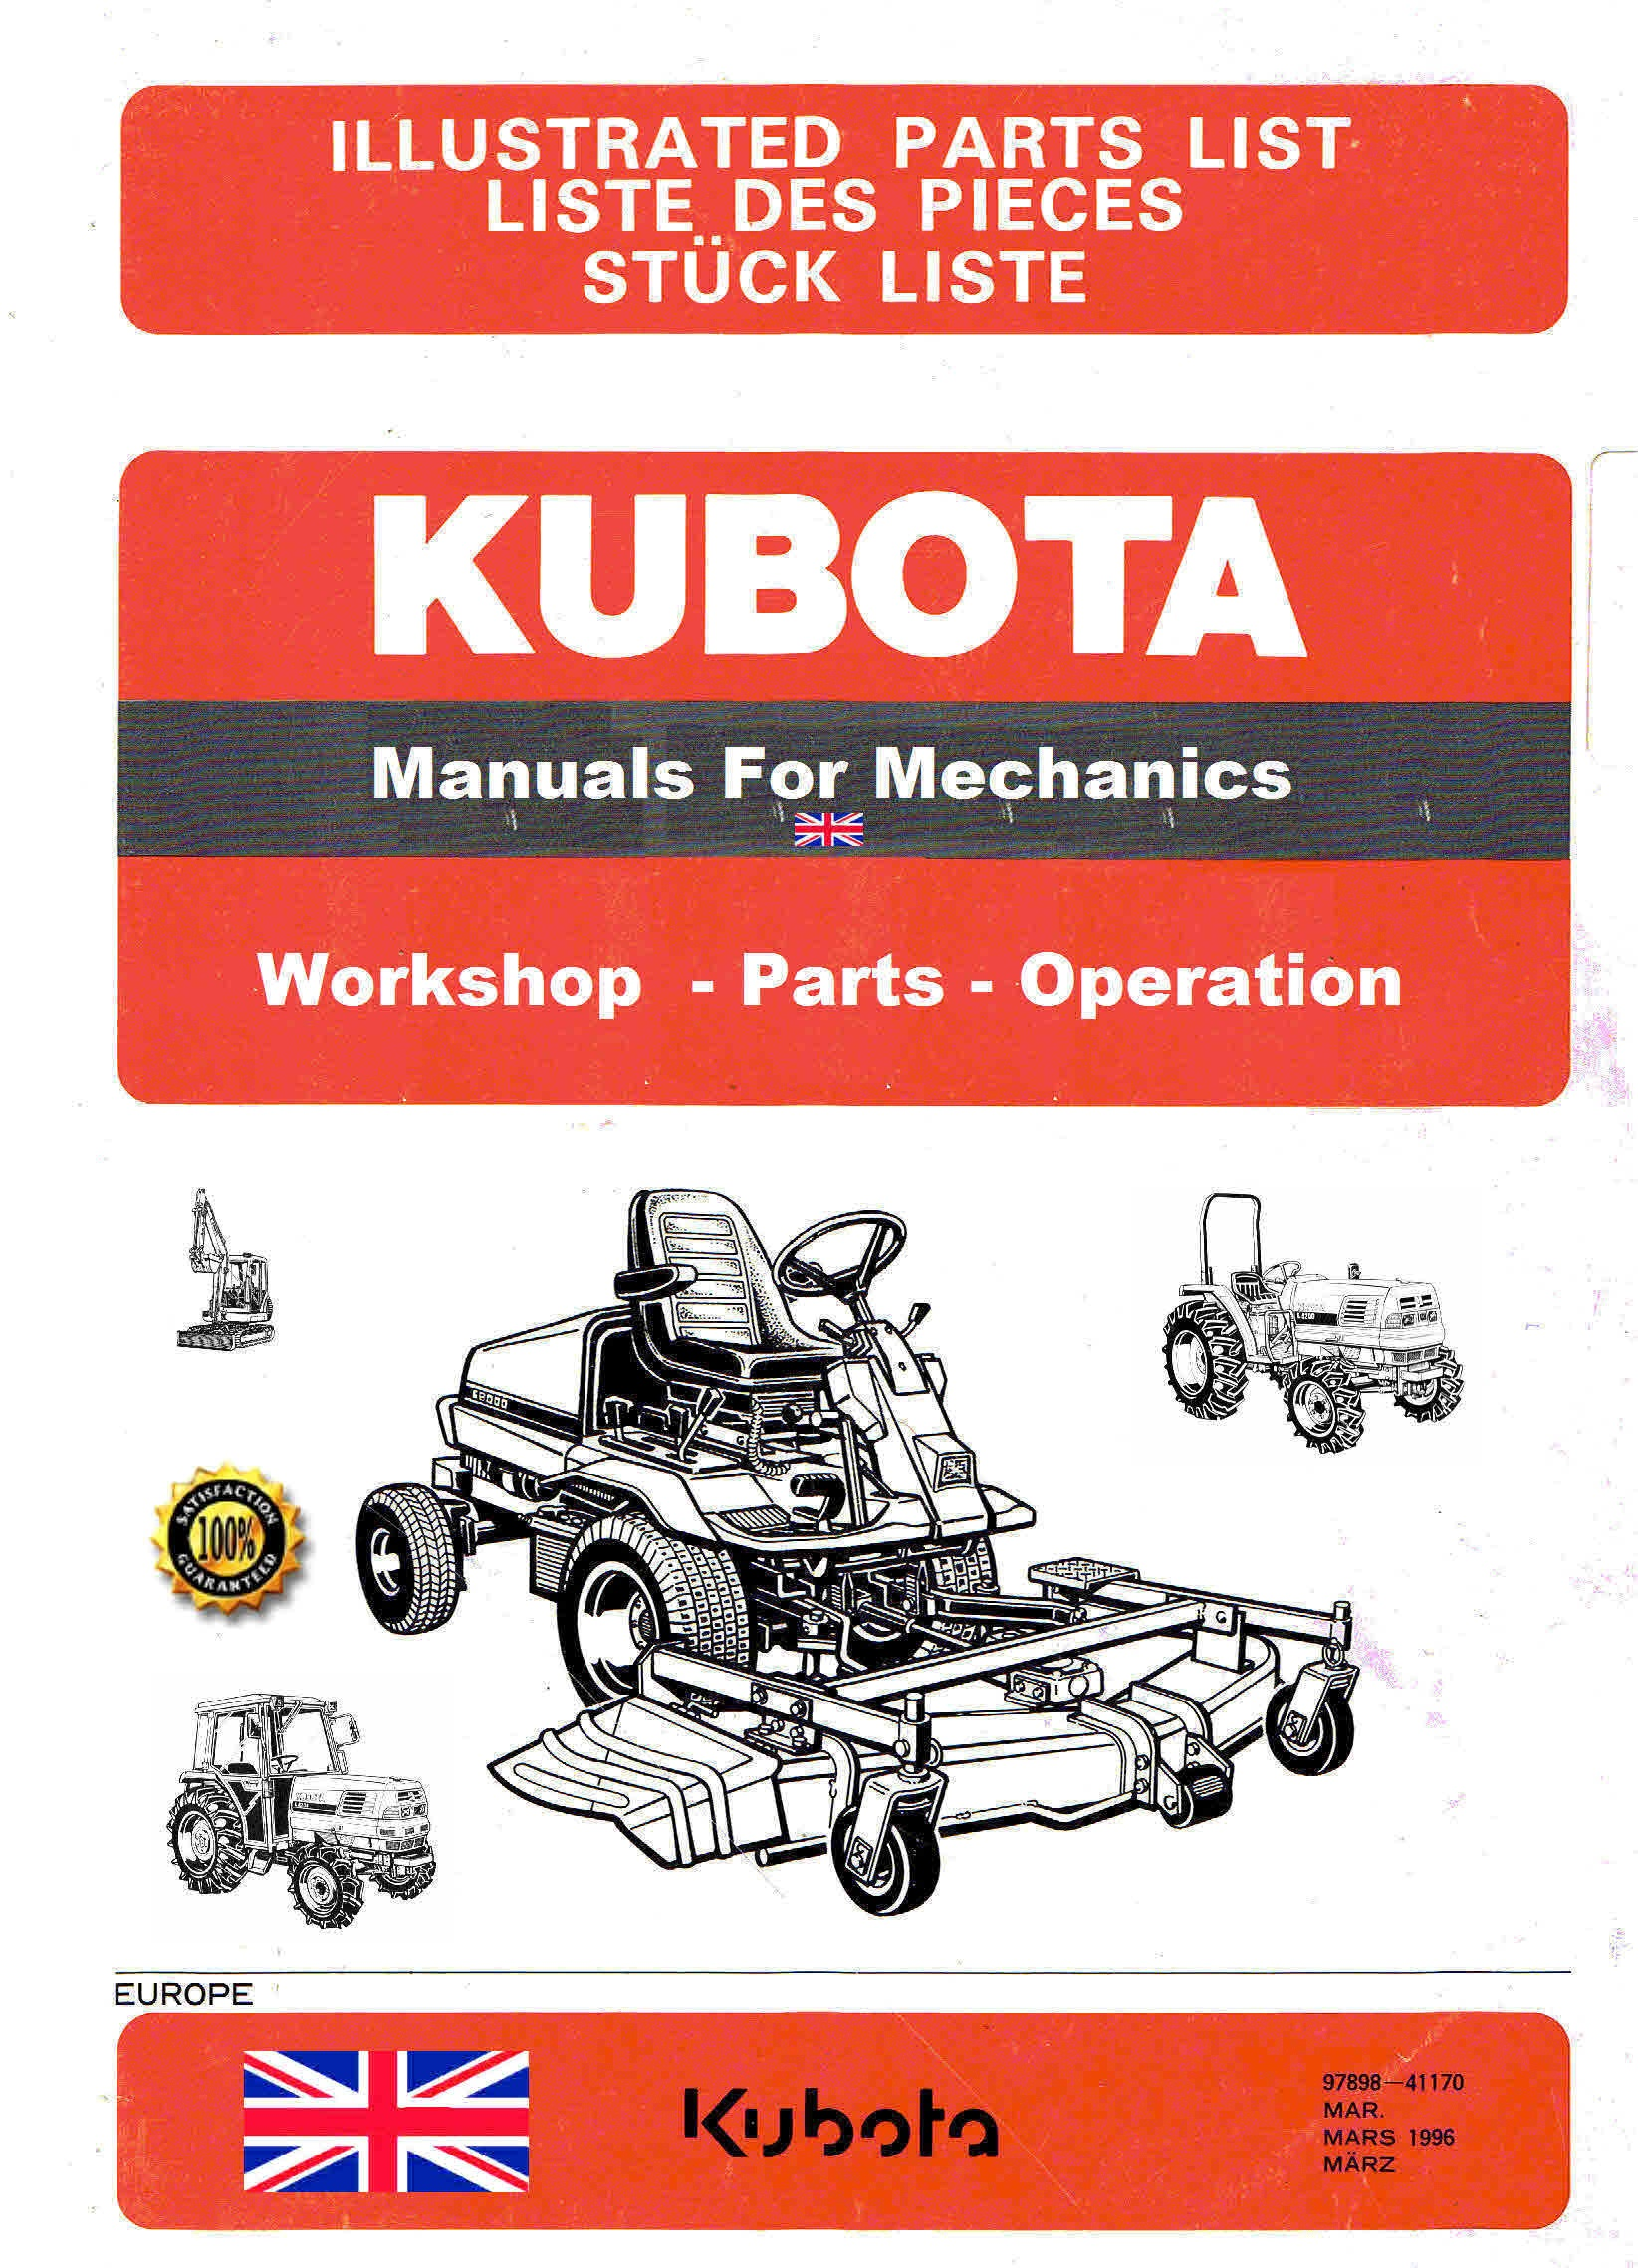 Kubota Manuals for Mechanics Themanualman